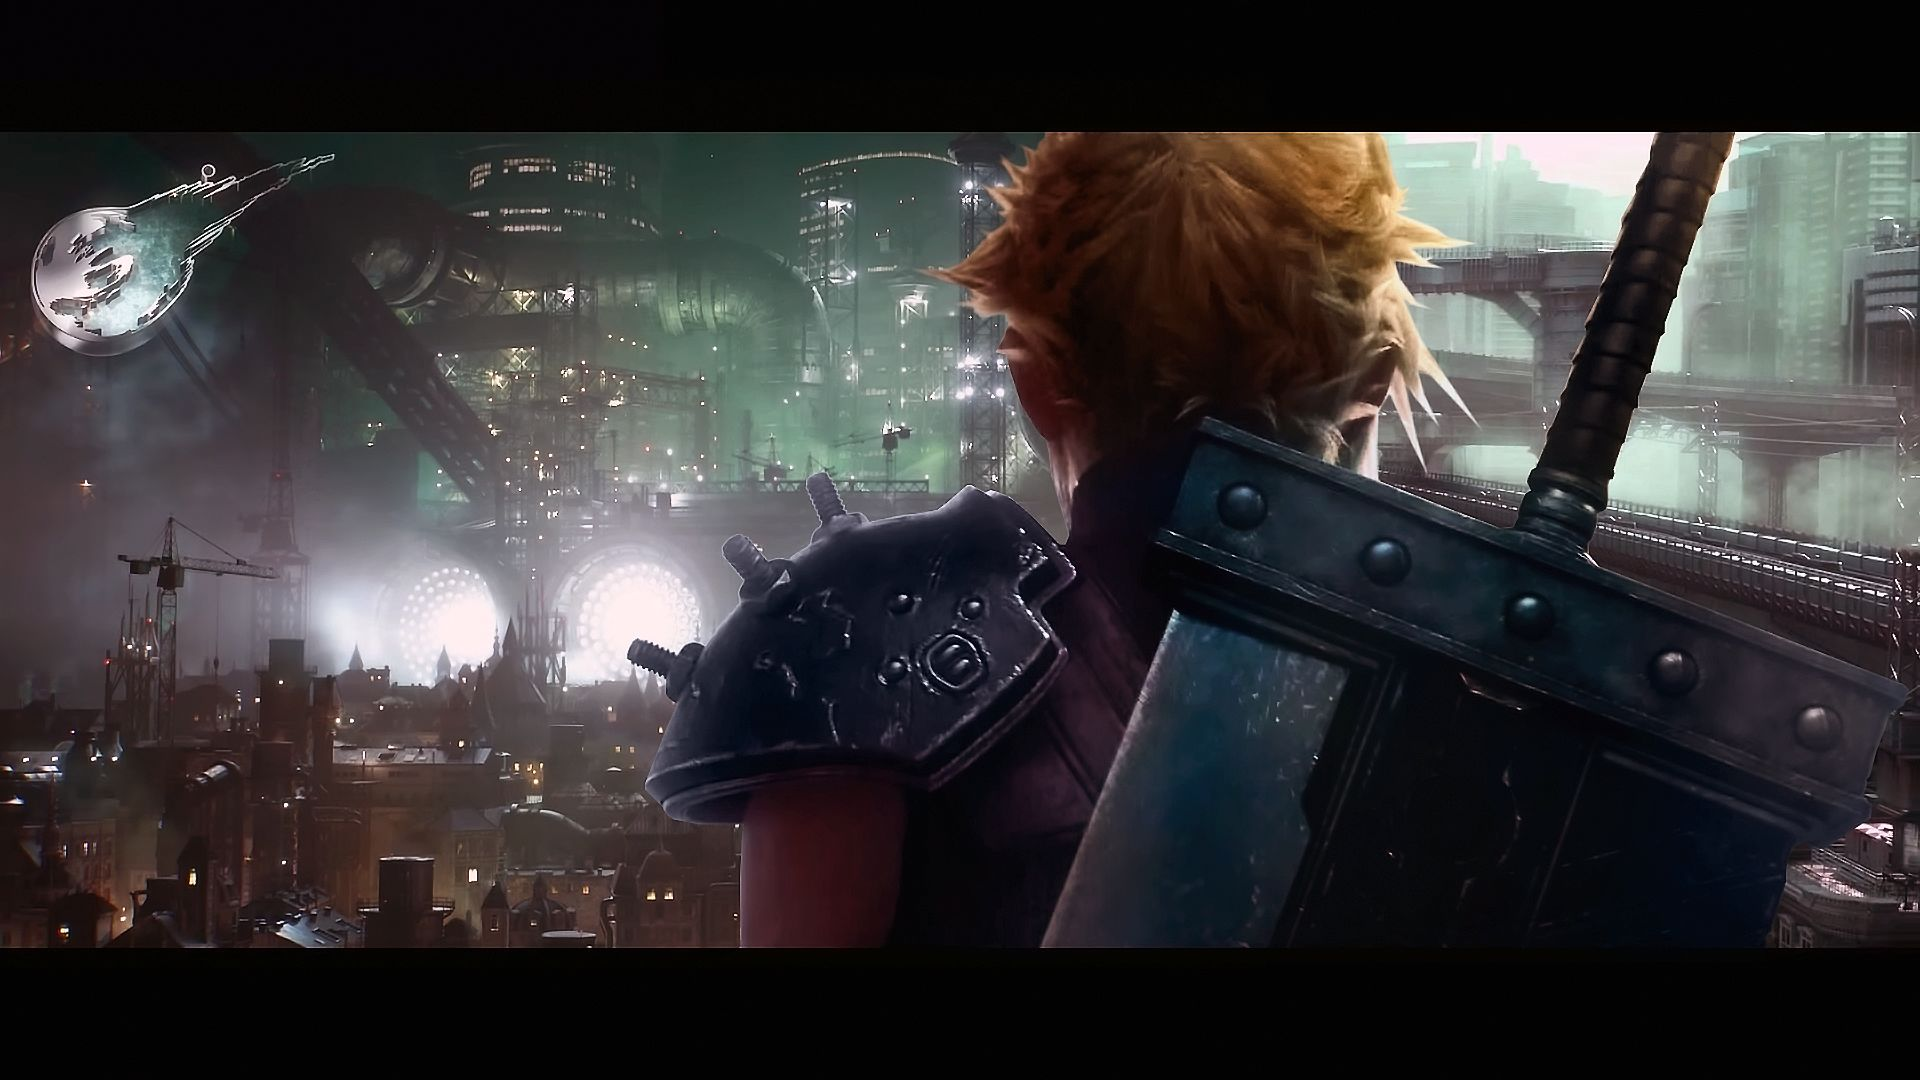 Final Fantasy 7 Remake Release Date, New Director